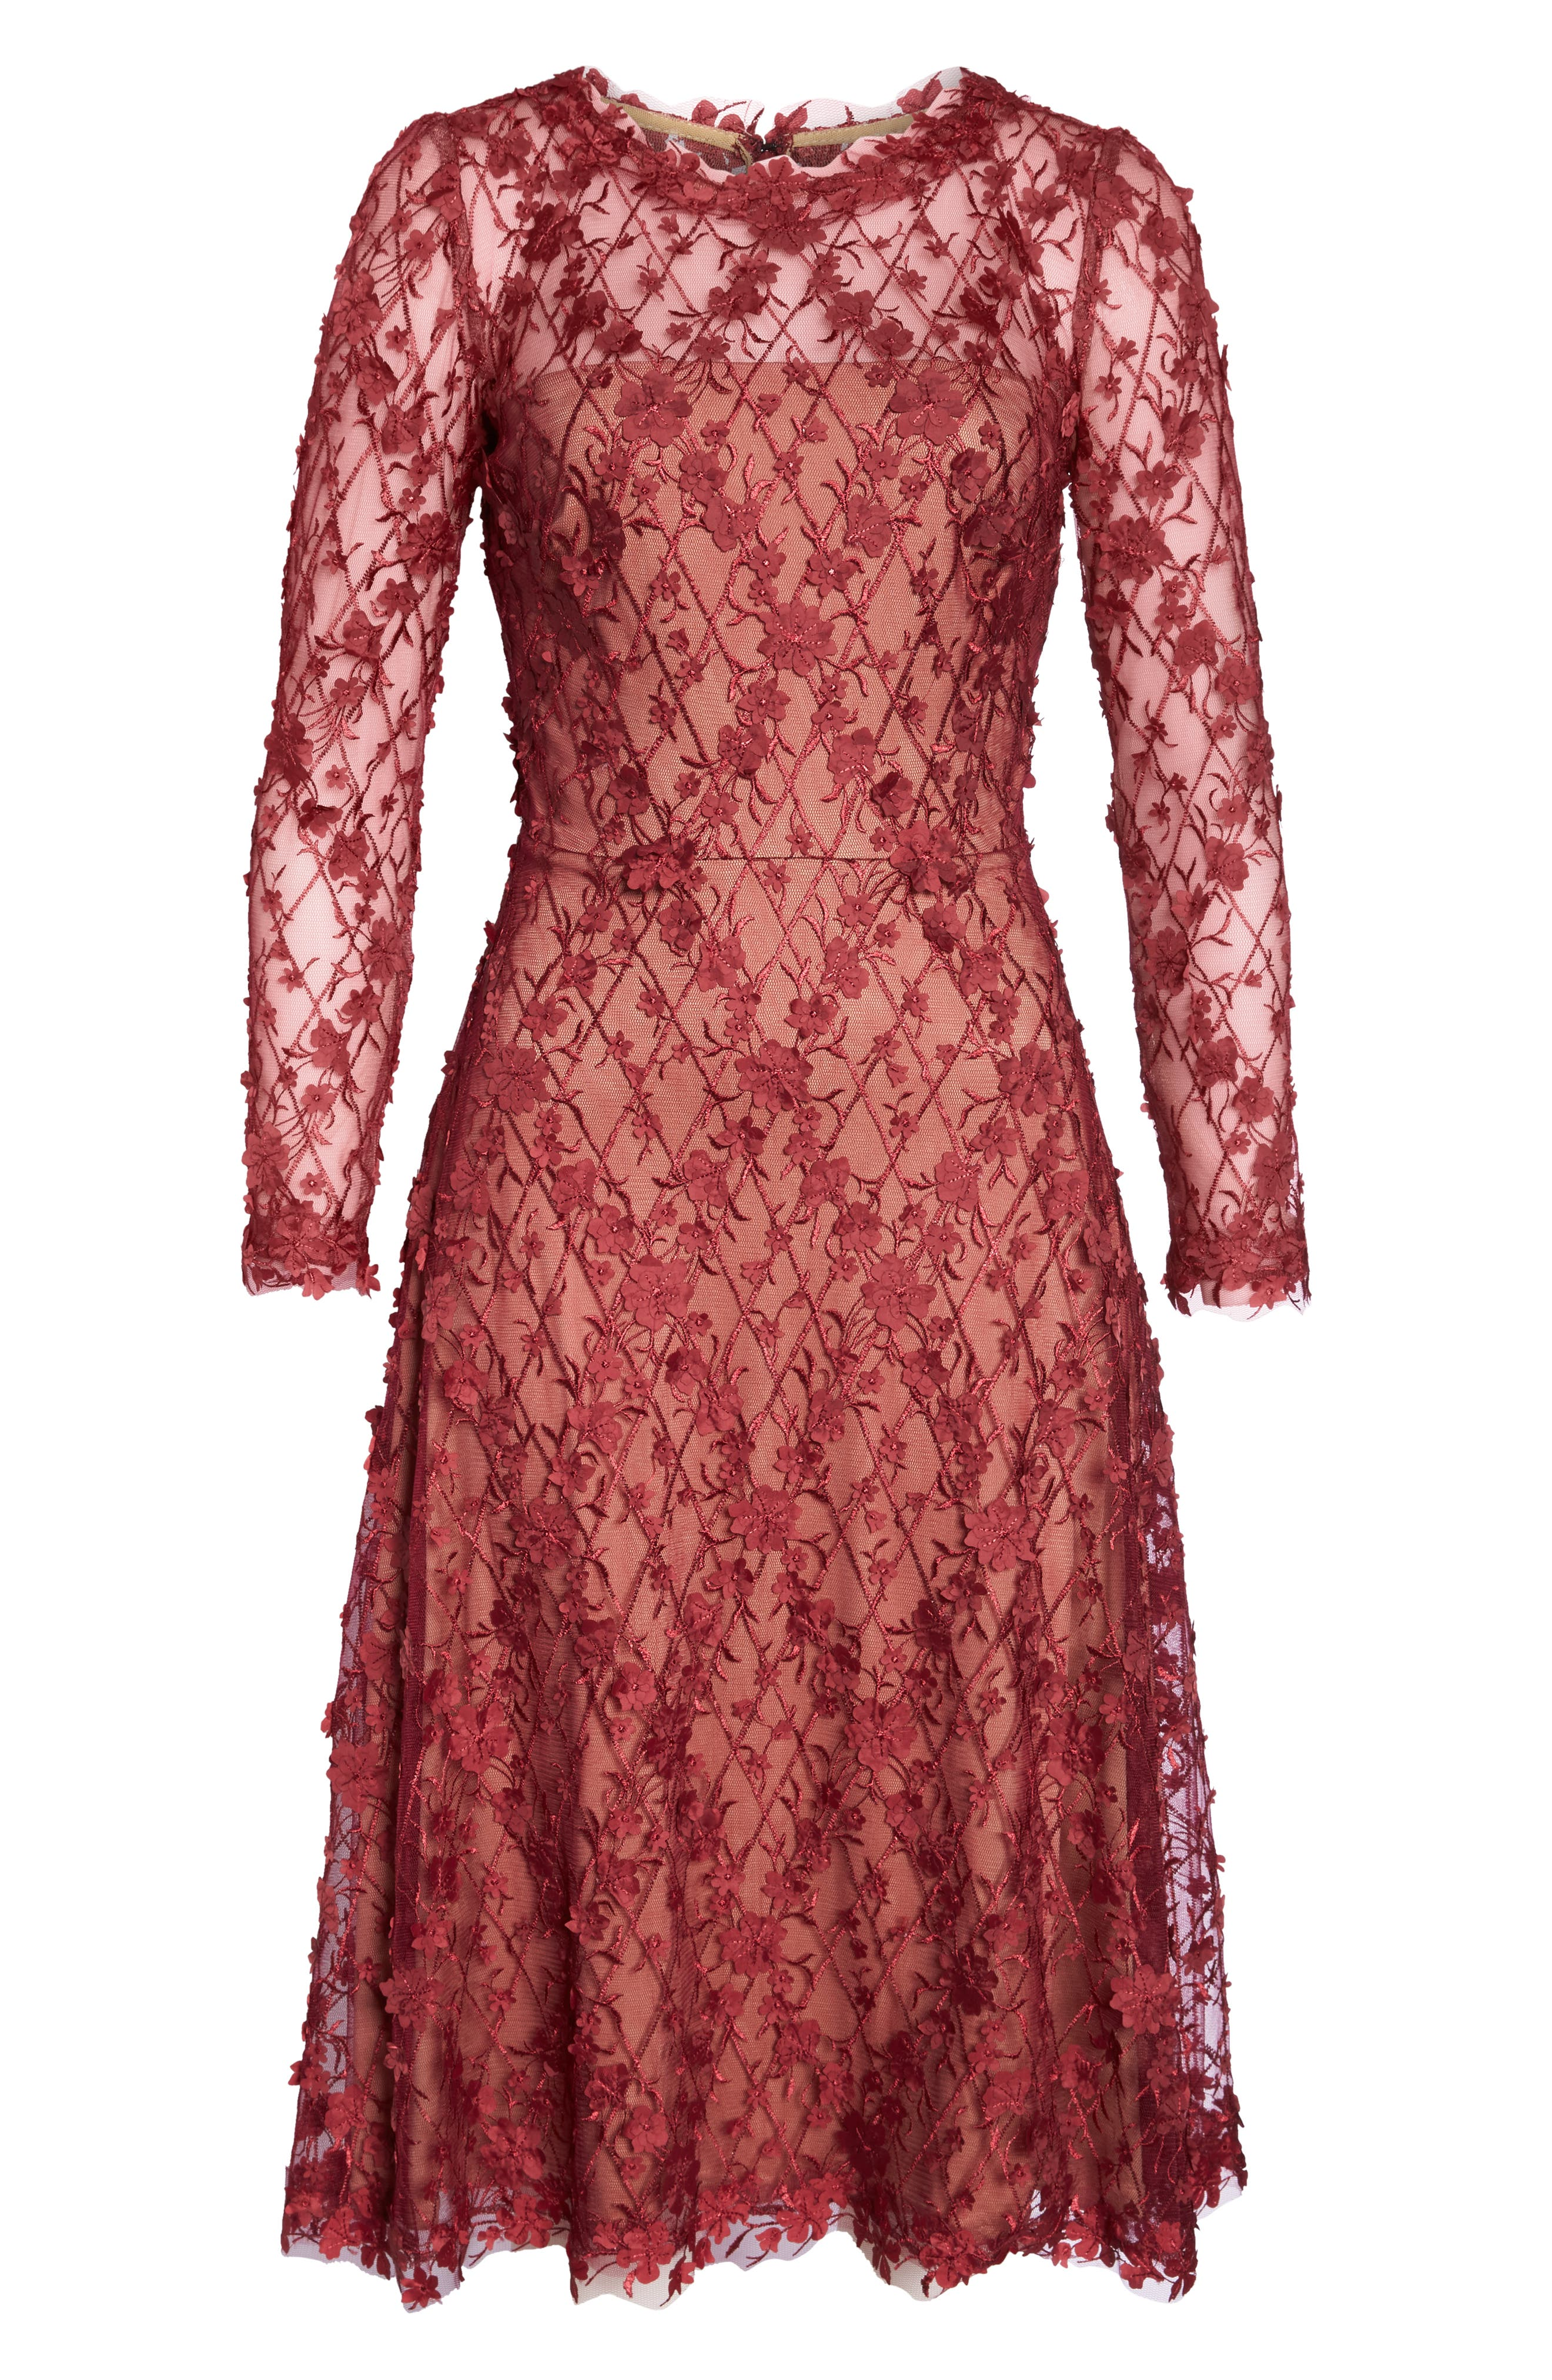 3D Flowers Lace Dress,                             Alternate thumbnail 6, color,                             ROSEWOOD/ NUDE